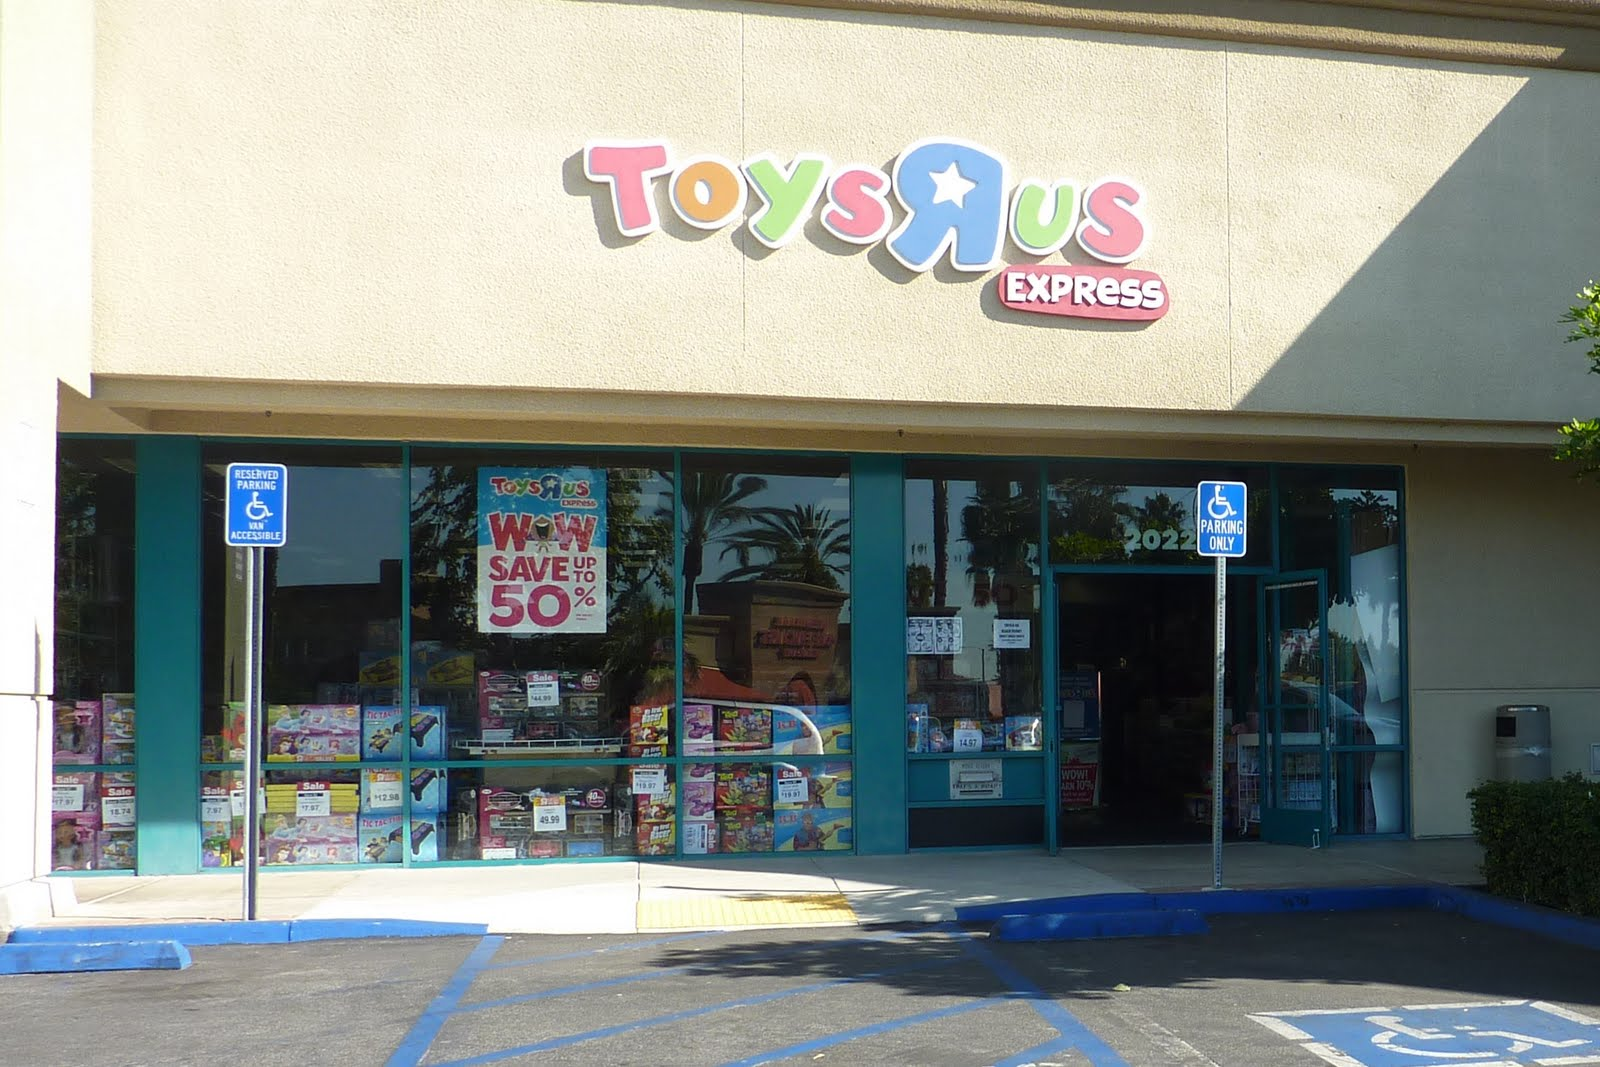 Toys R Us Mall : Montebello mom toys r us express mall